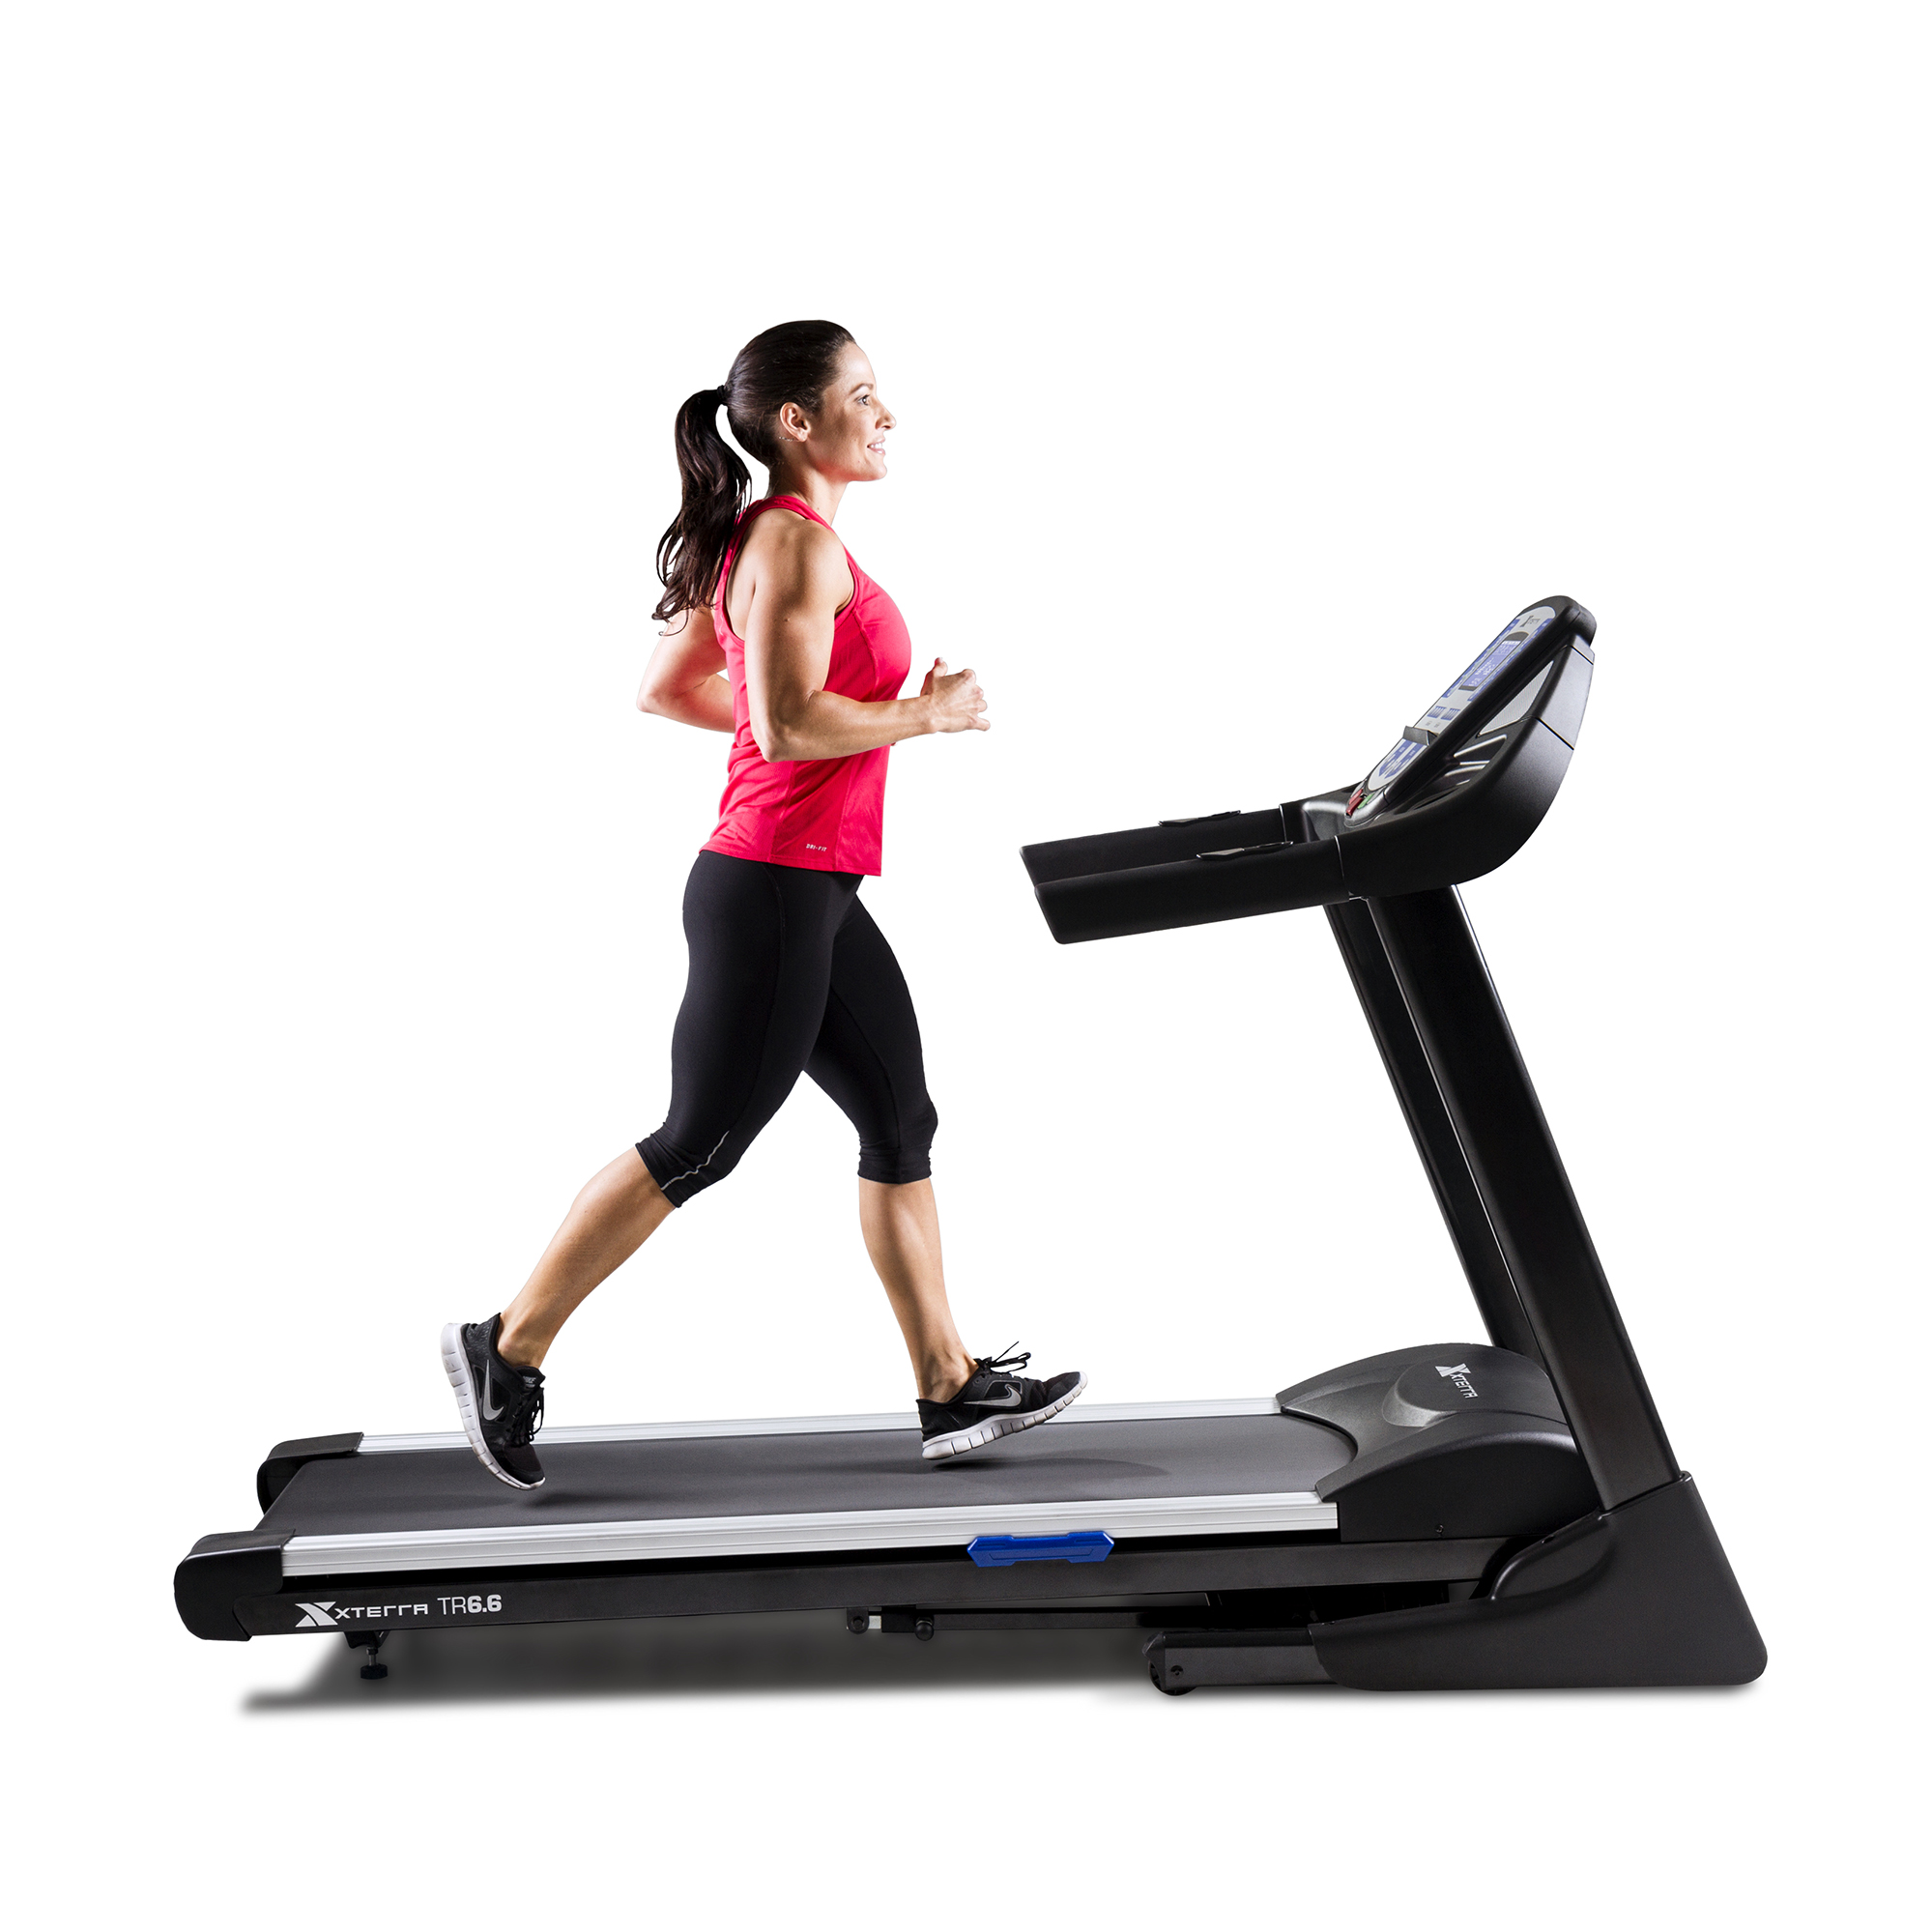 XTERRA Fitness TR6.6 Folding Treadmill with Heart Rate Chest Strap by Dyaco International